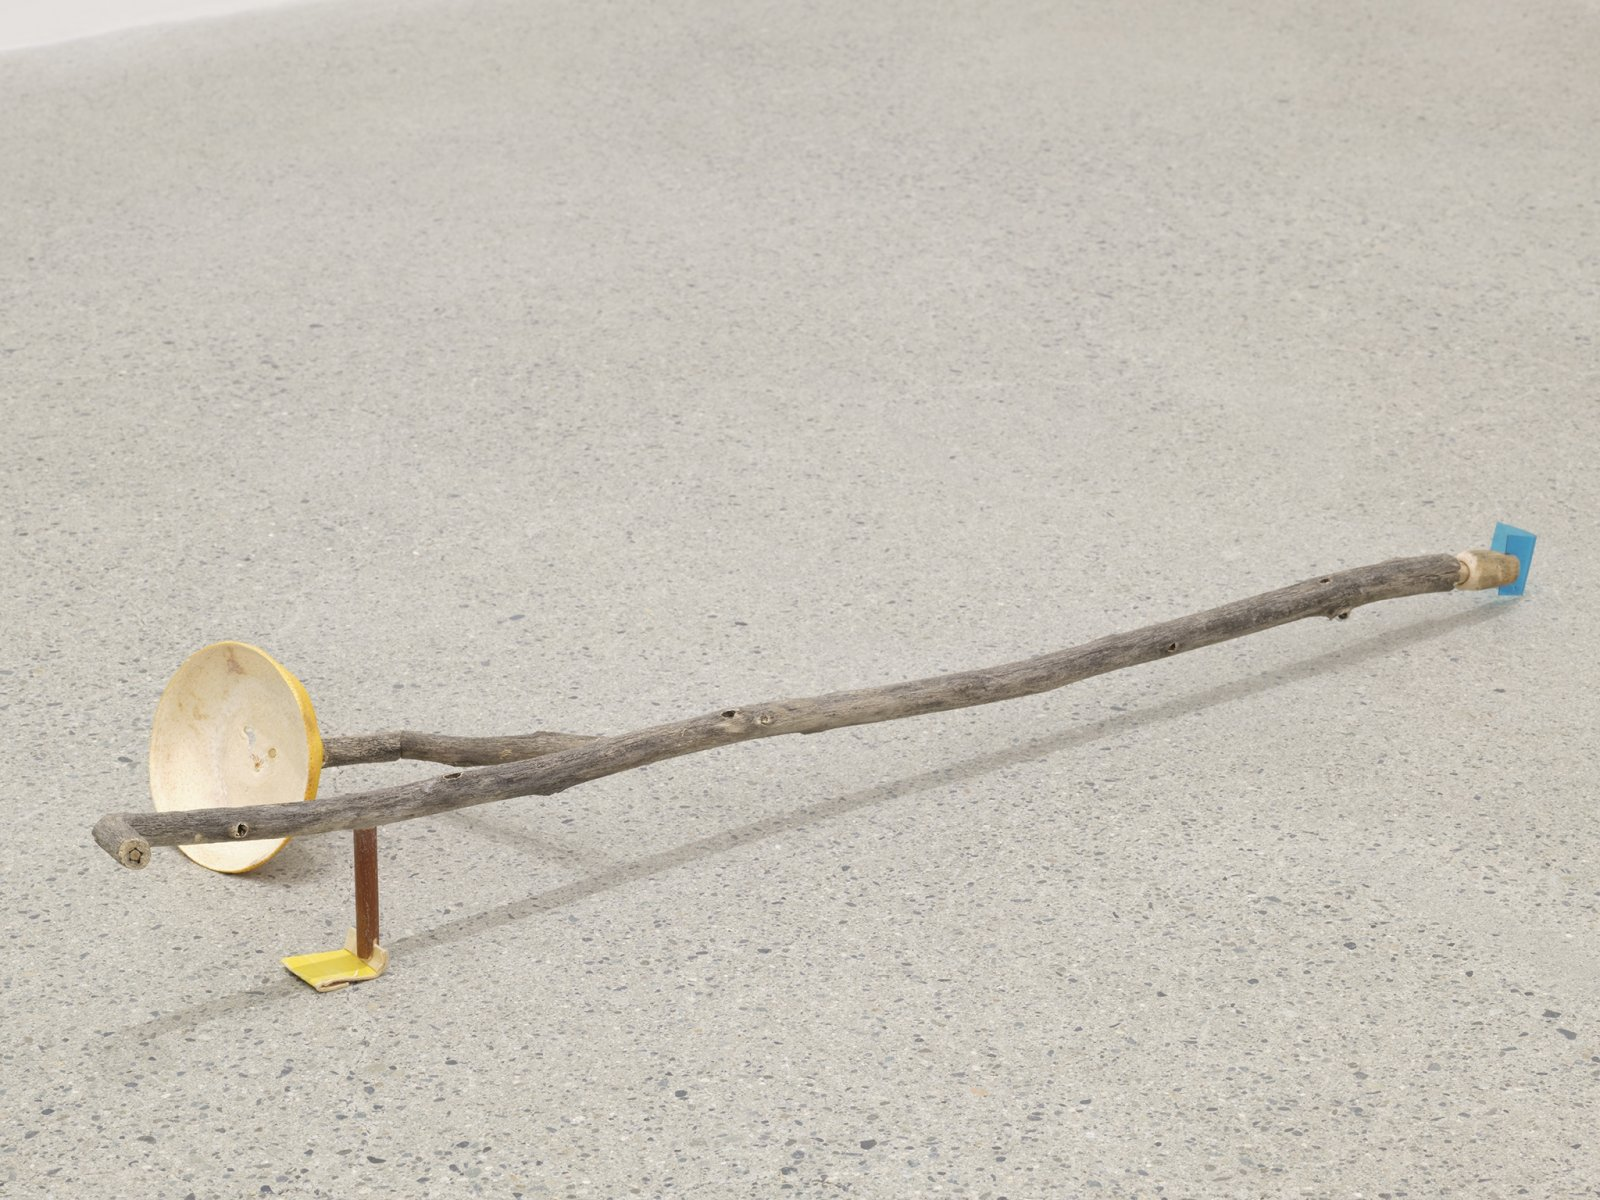 Ashes Withyman, Seagull feather floating, the smell of hot roof-tar also floating, 2019, branches, plastic, compass box cardboard, grapefruit rind, 4 x 30 x 9 in. (10 x 75 x 23 cm) by Ashes Withyman